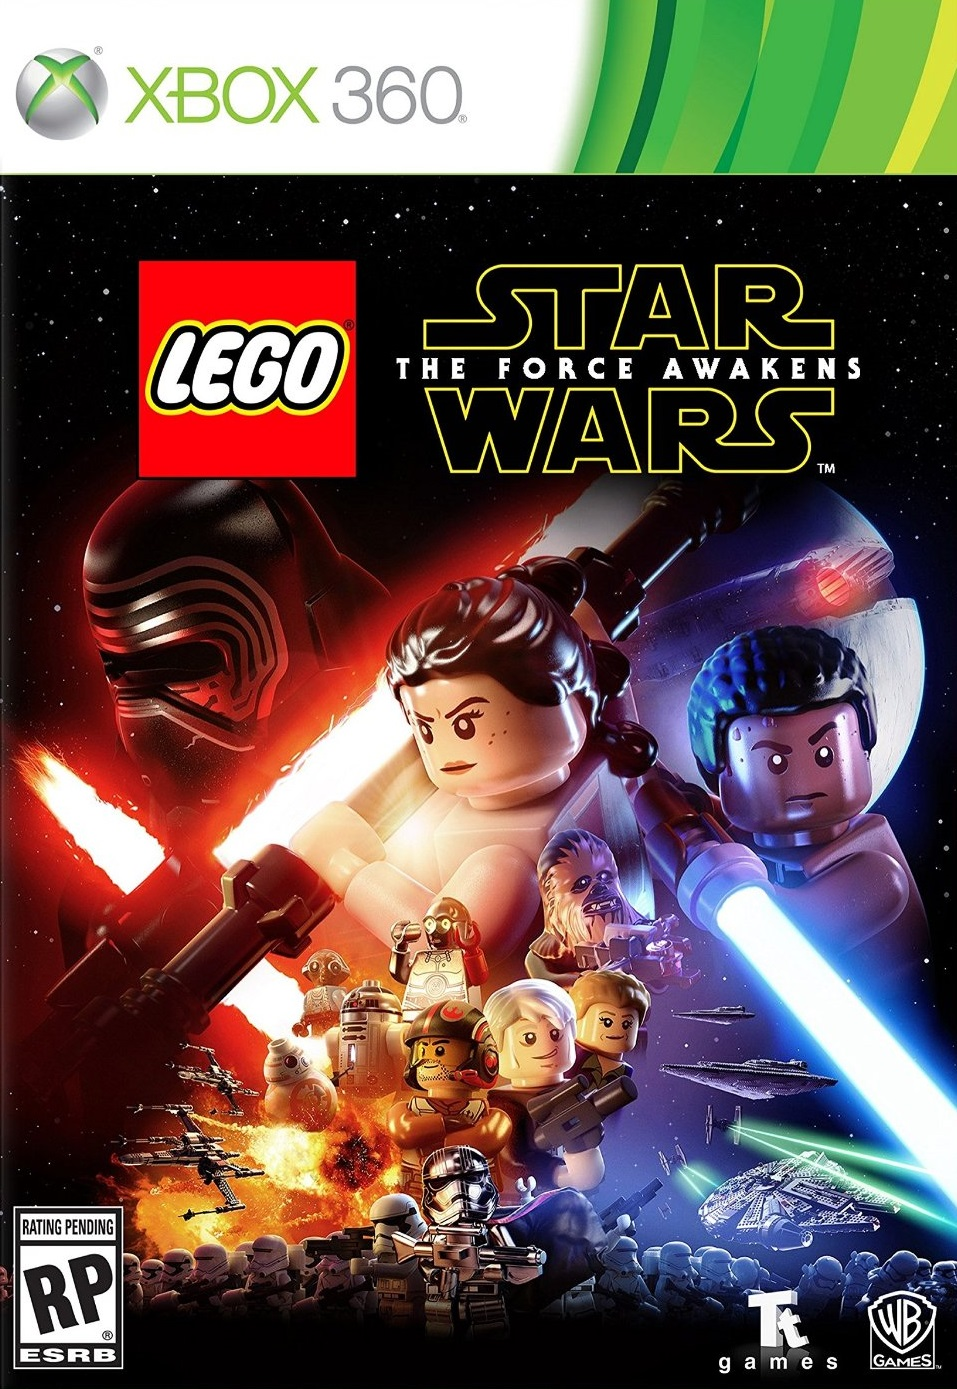 LEGO STAR WARS The Force Awakens XBOX 360 ESPAÑOL